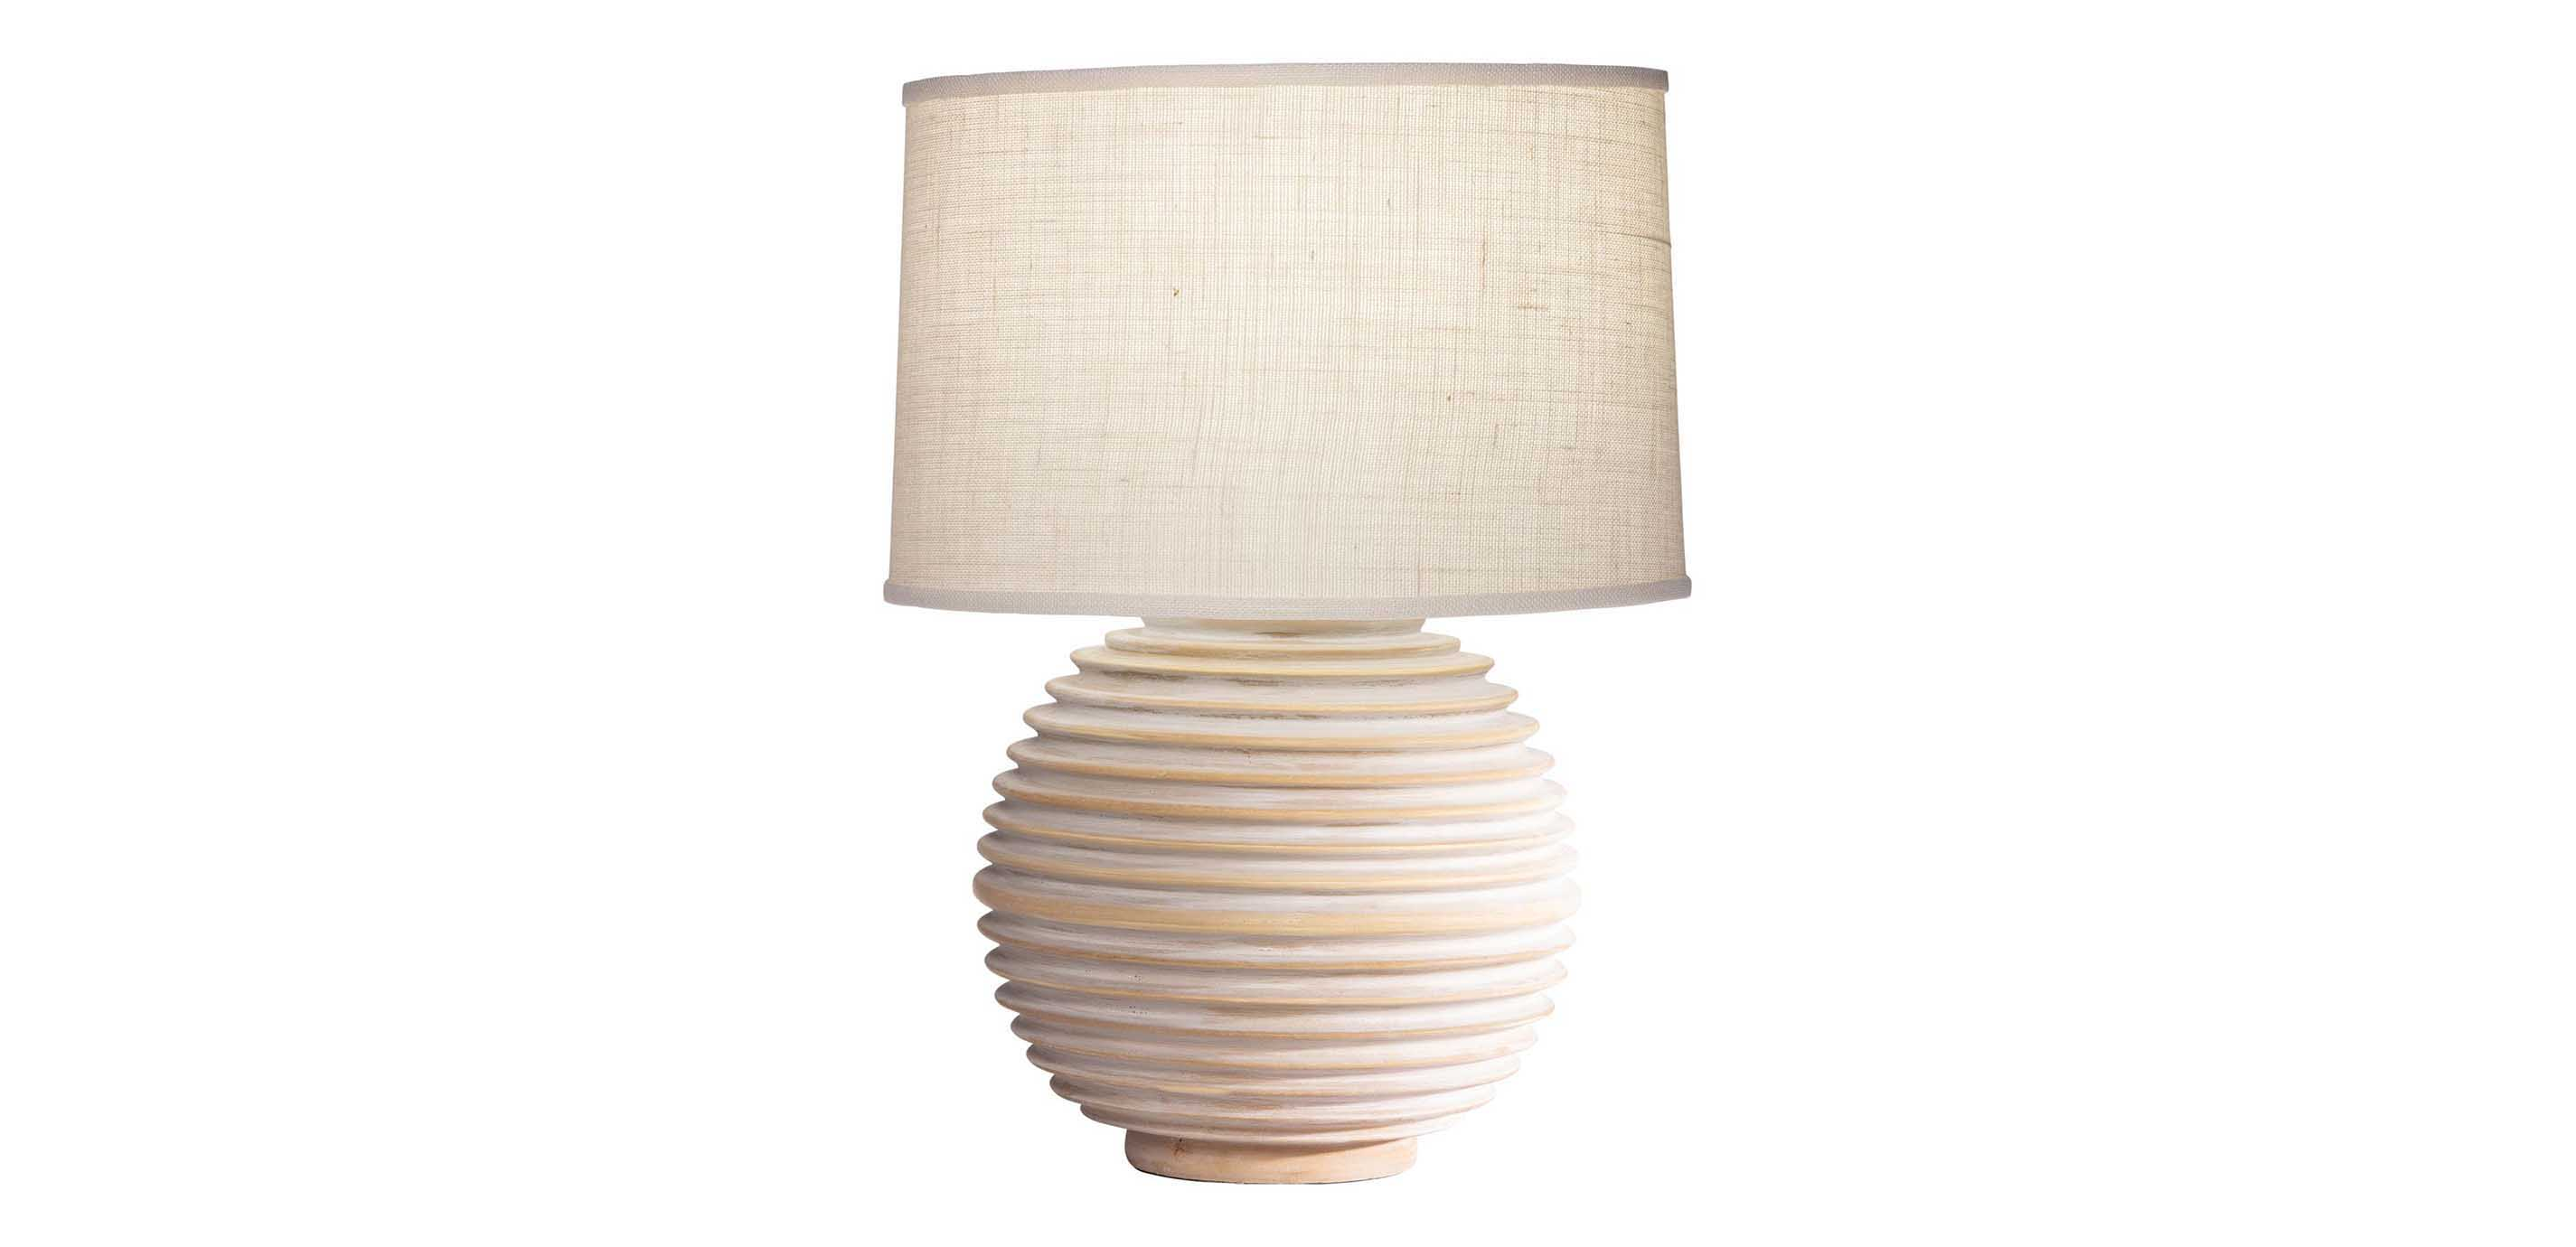 Crosby wooden table lamp table lamps images crosby wooden table lamp largegray geotapseo Gallery